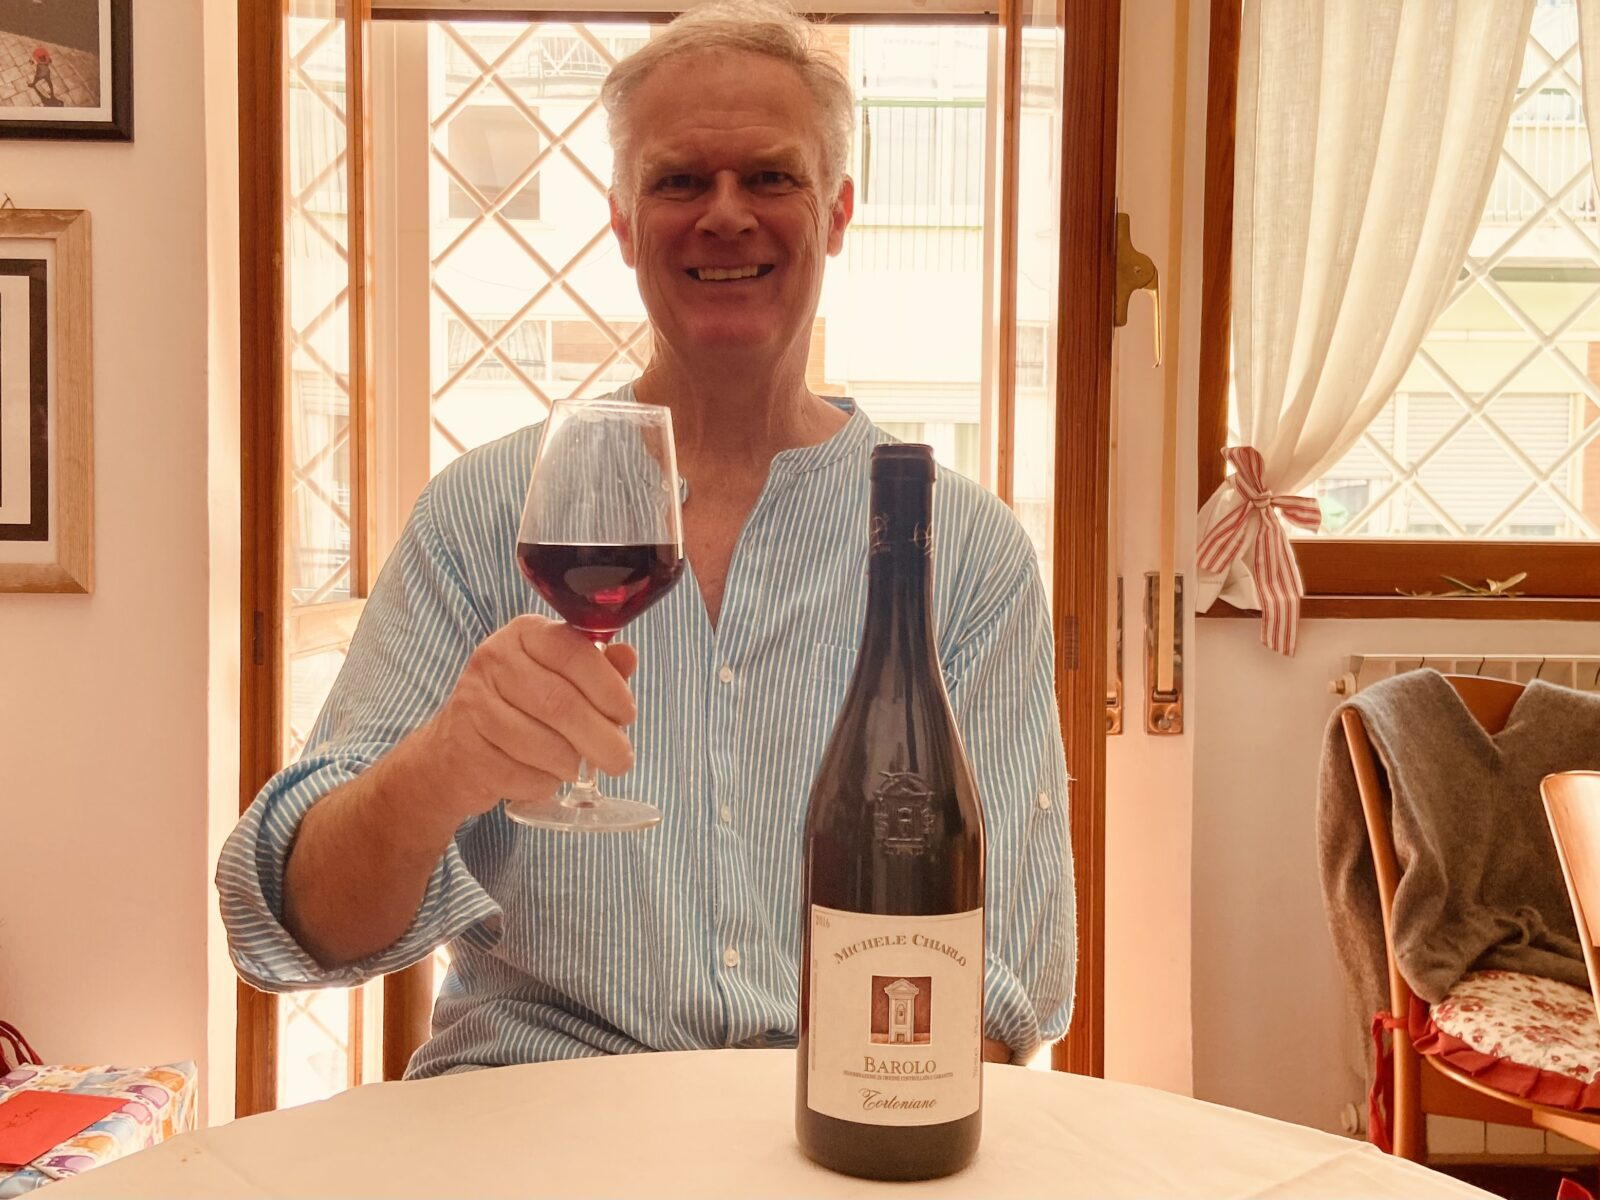 With Barolo, my favorite wine in the world, every day can feel like a birthday.